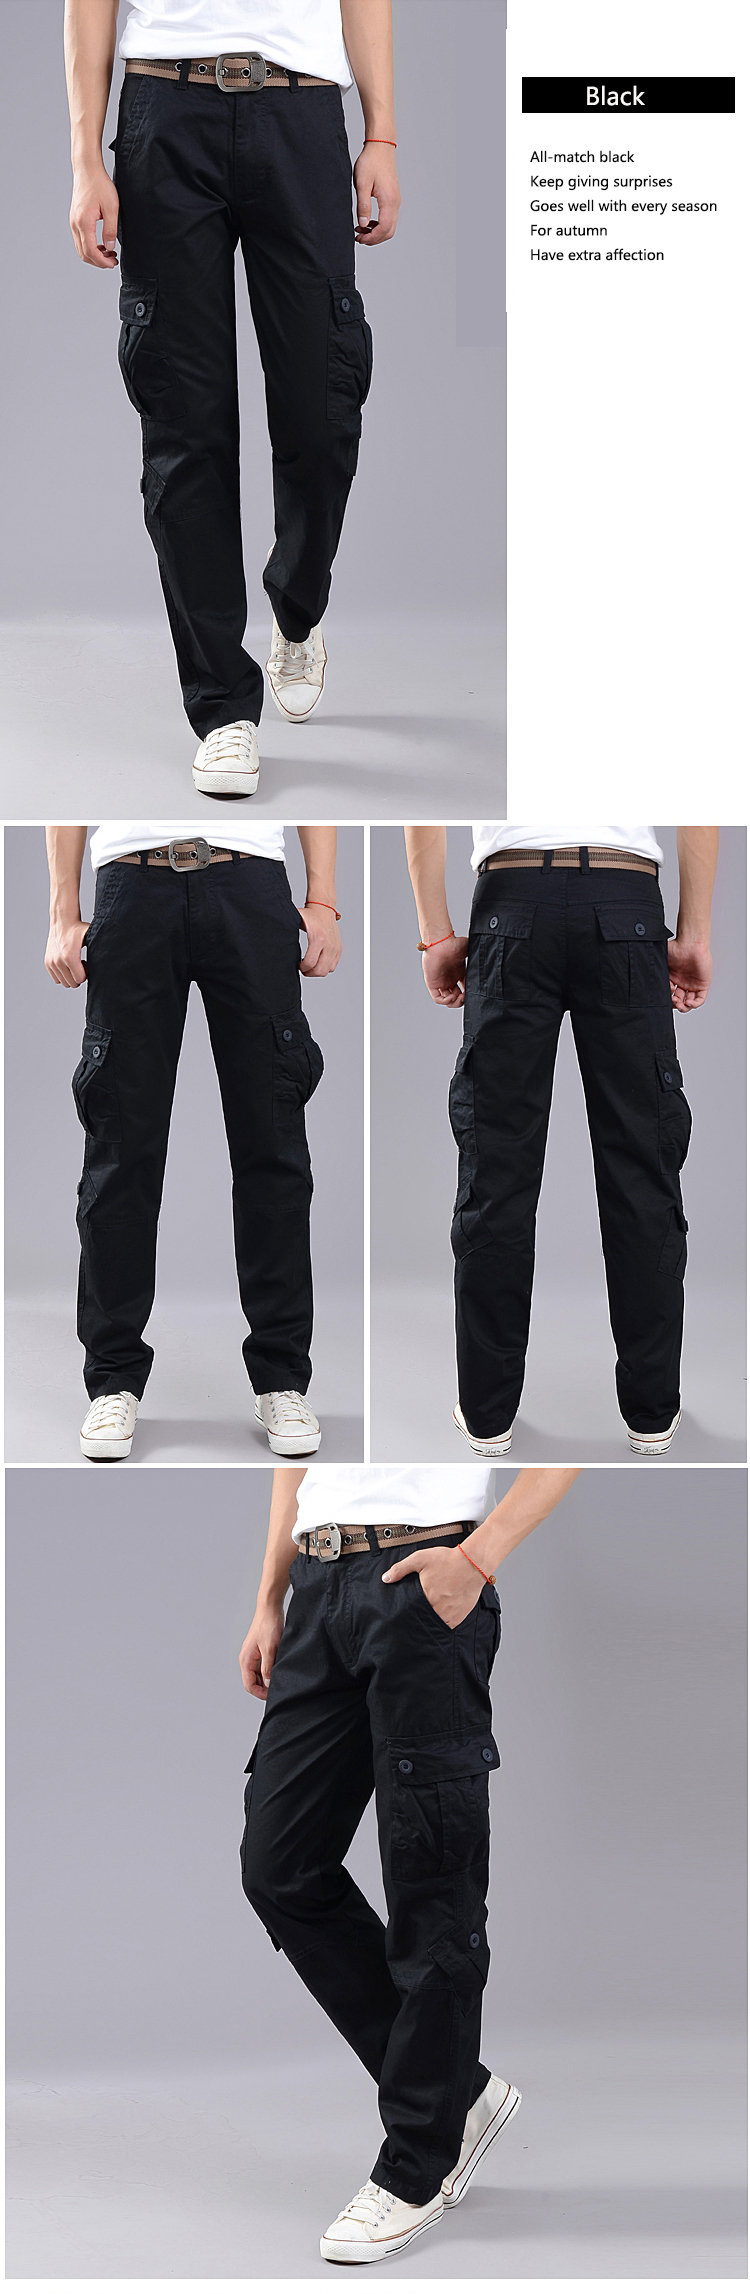 Men's Cargo Pants Baggy Casual Pants Male Army Military Tactical Full Length Trousers Loose